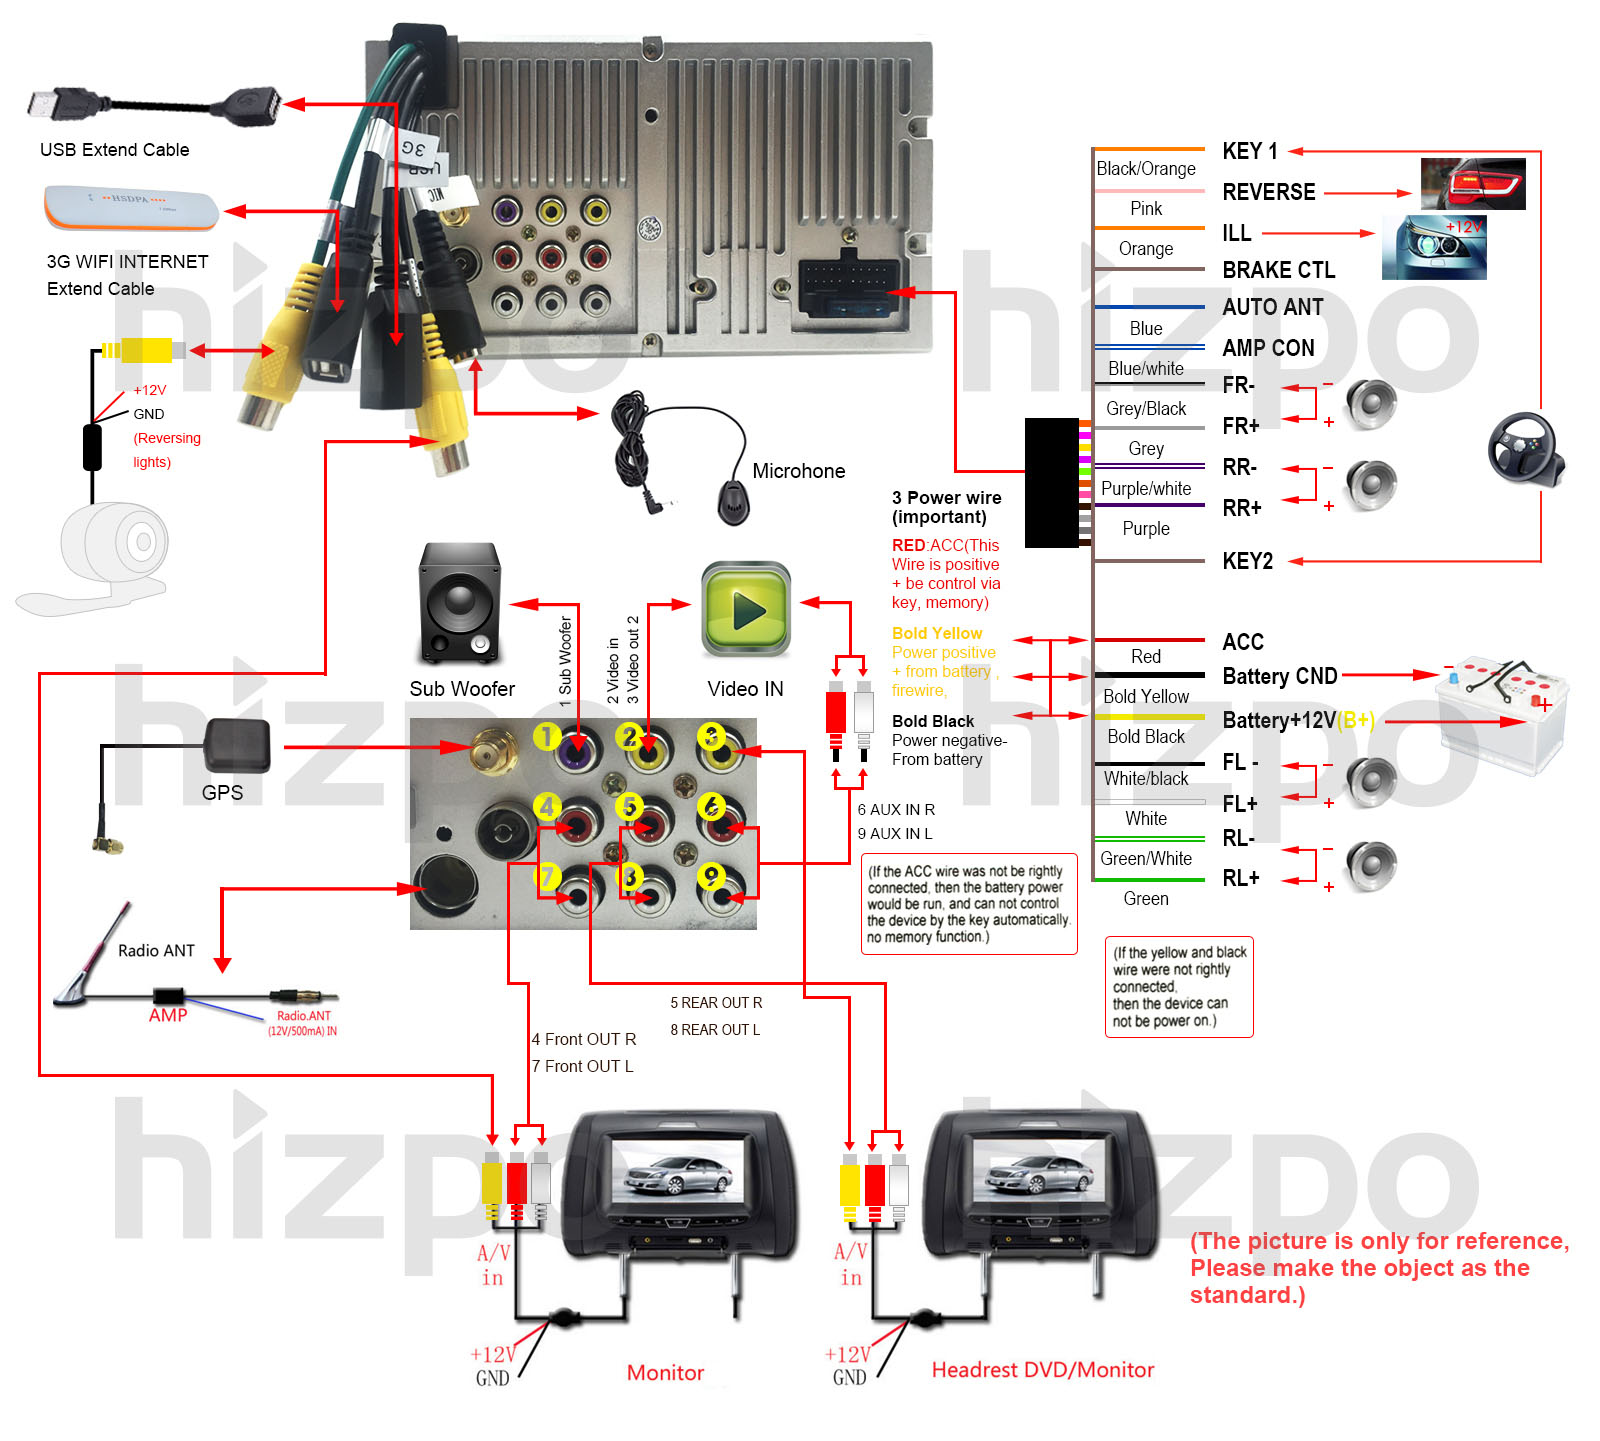 hight resolution of hizpo for vw jetta passat golf 7 quot hd touch car stereo gps basic relay wiring diagram basic relay wiring diagram